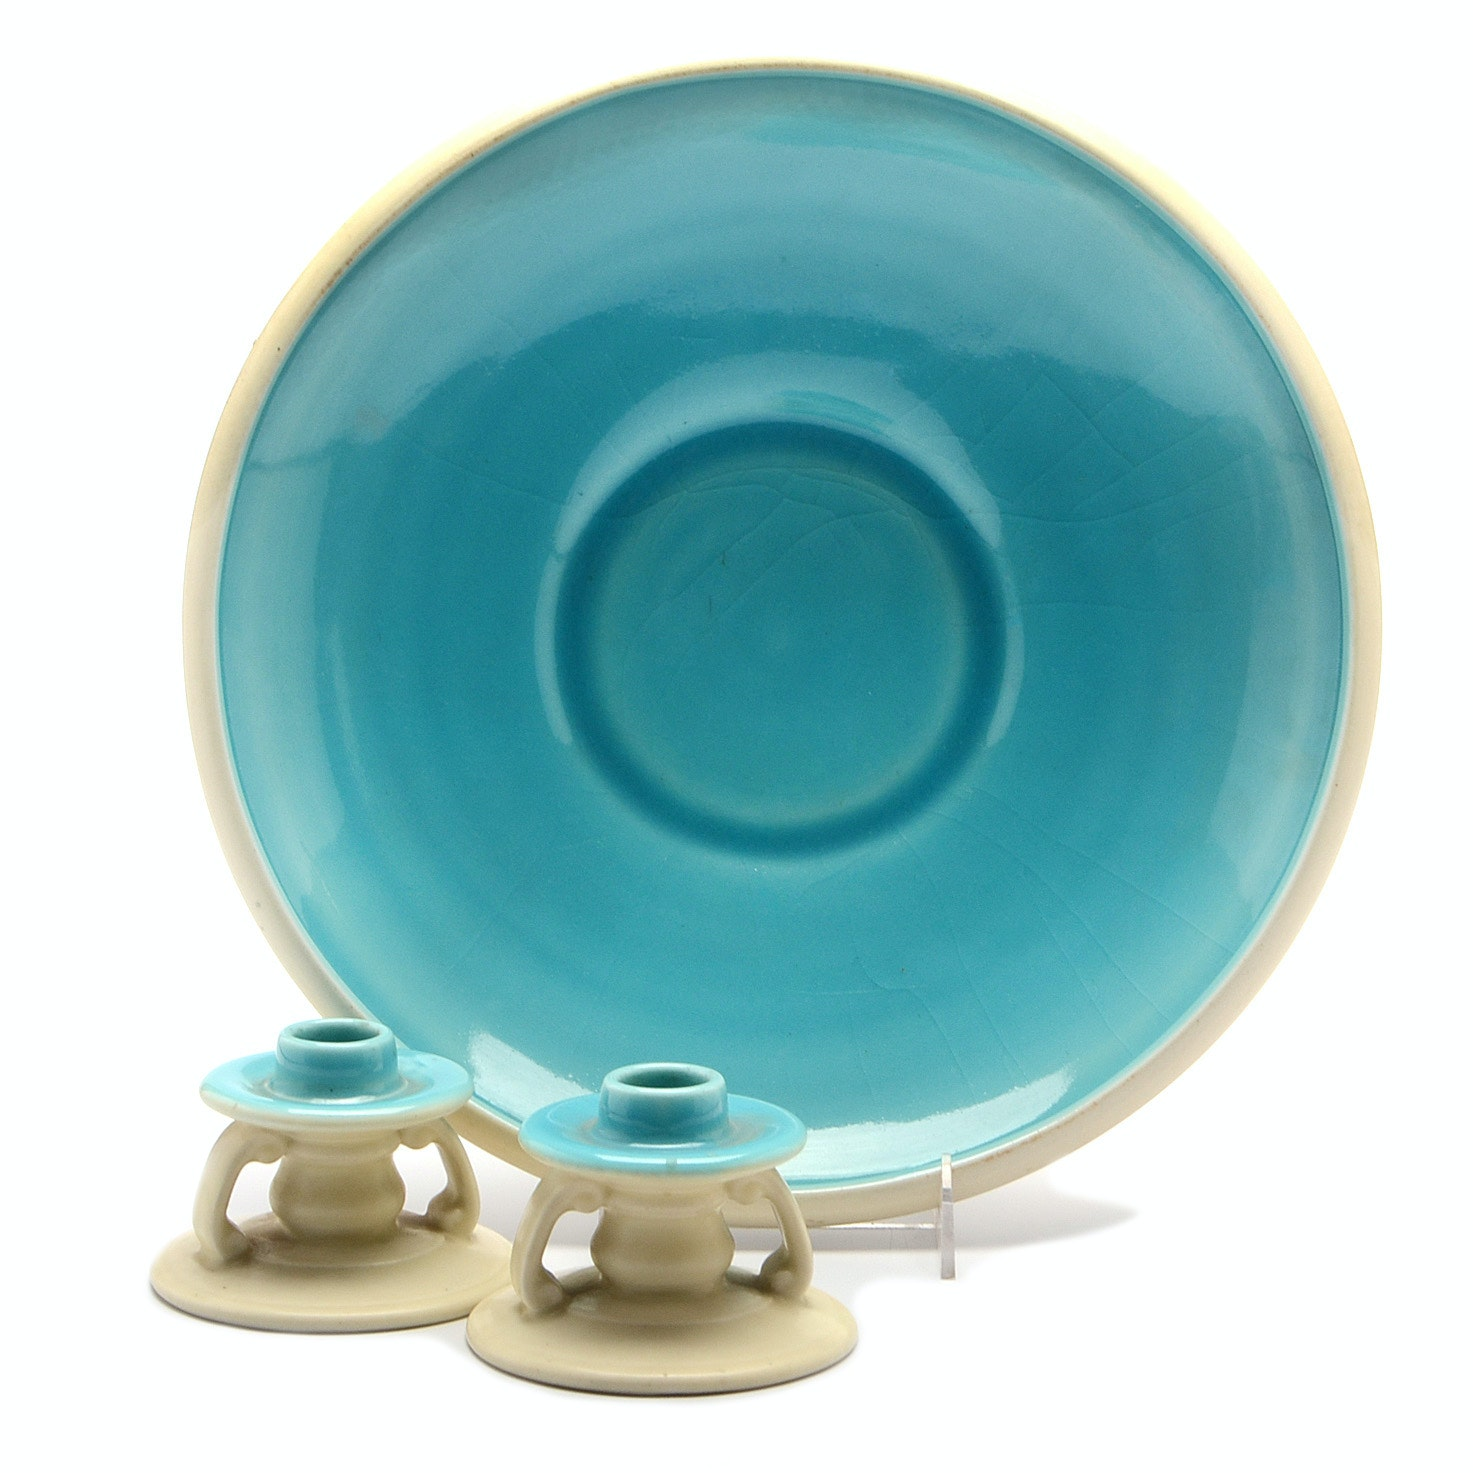 Rookwood Low Bowl and Candleholders in Cream and Aqua Low Glaze